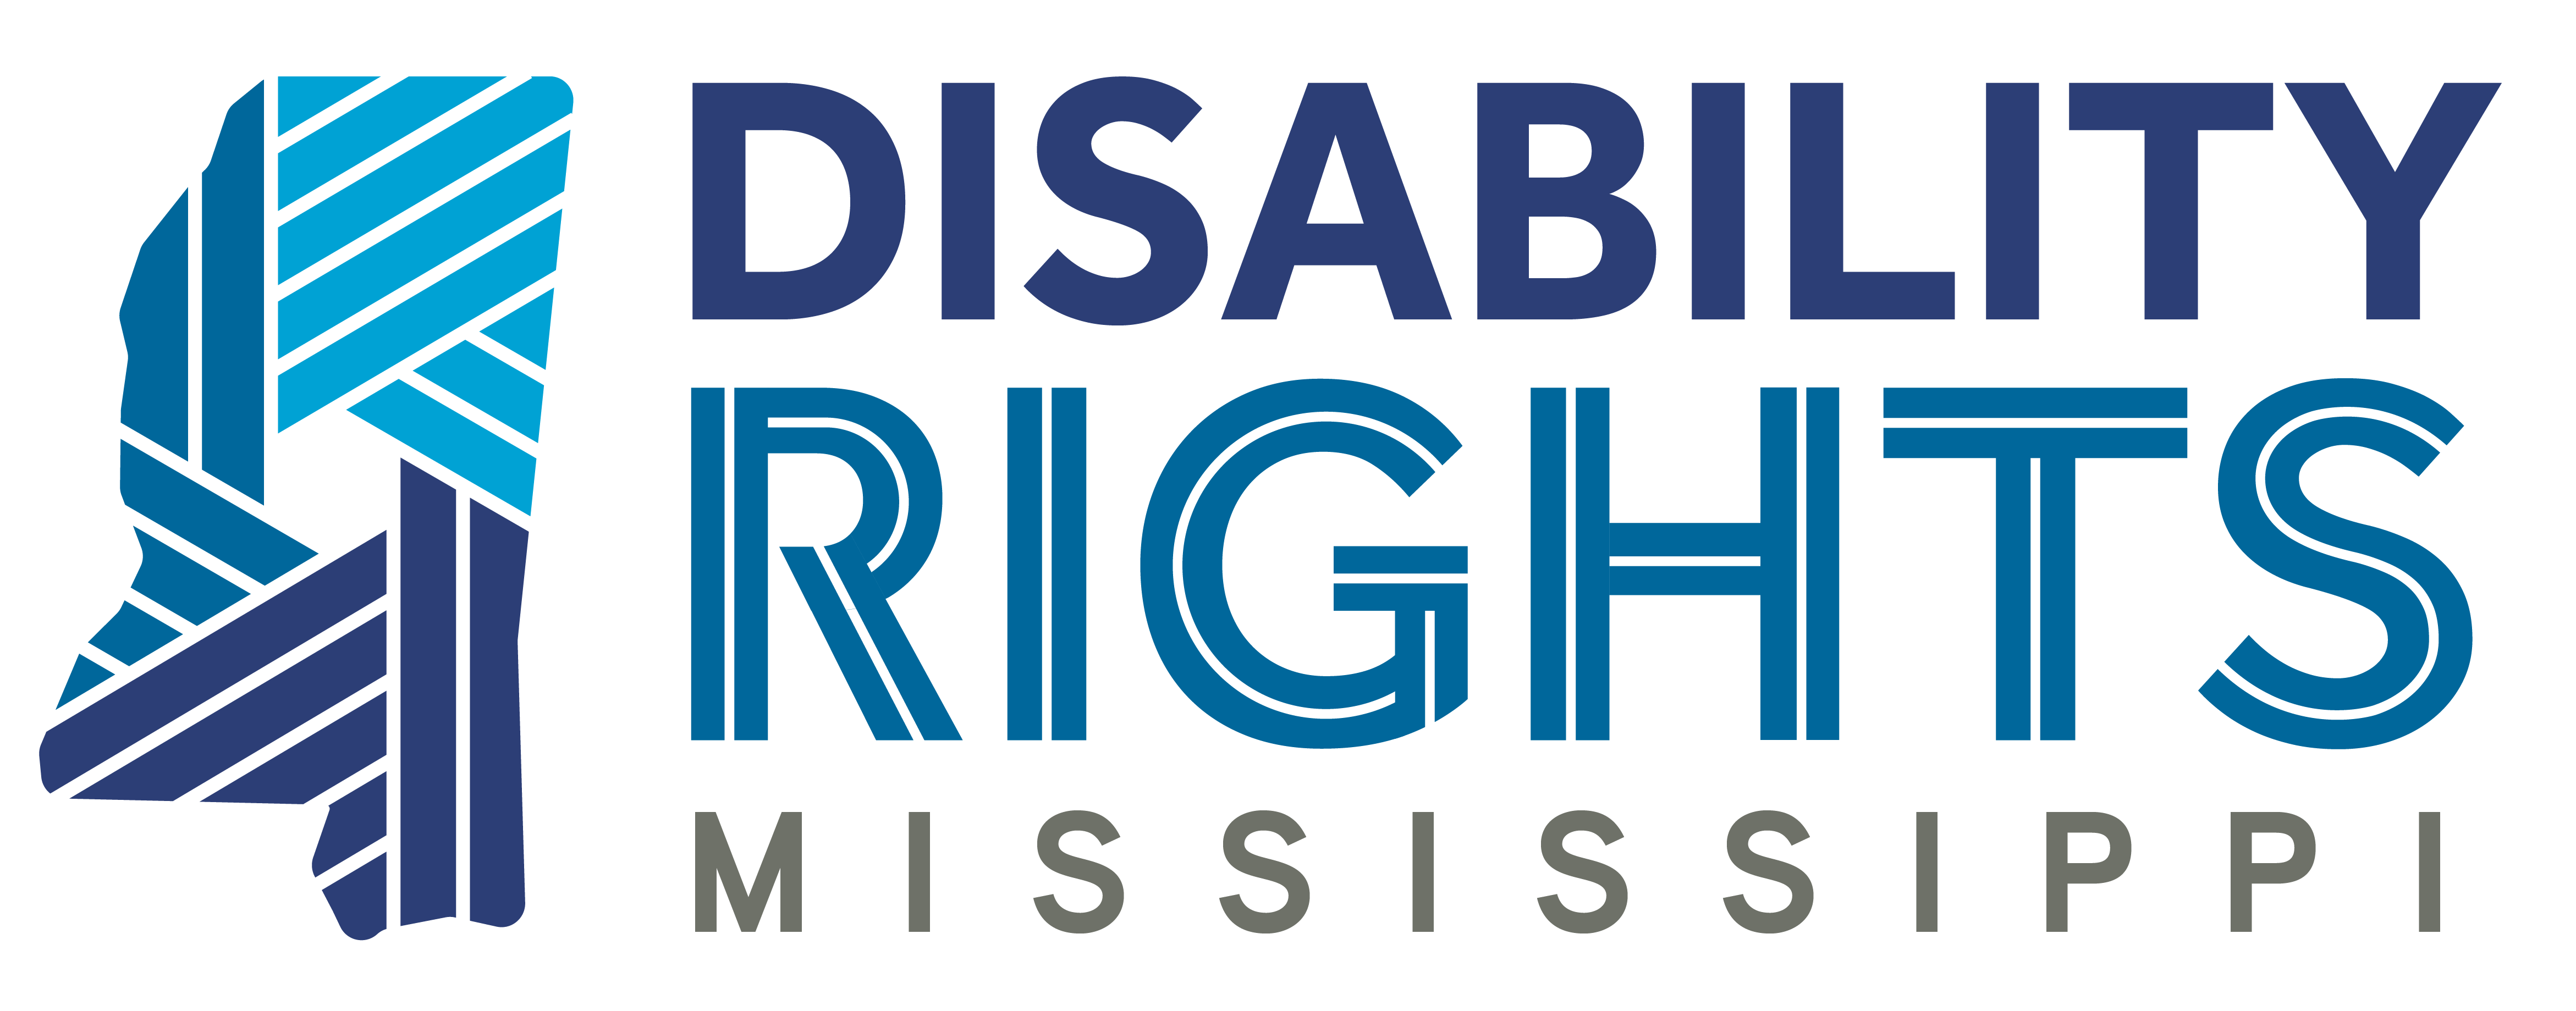 Disability Rights Mississippi